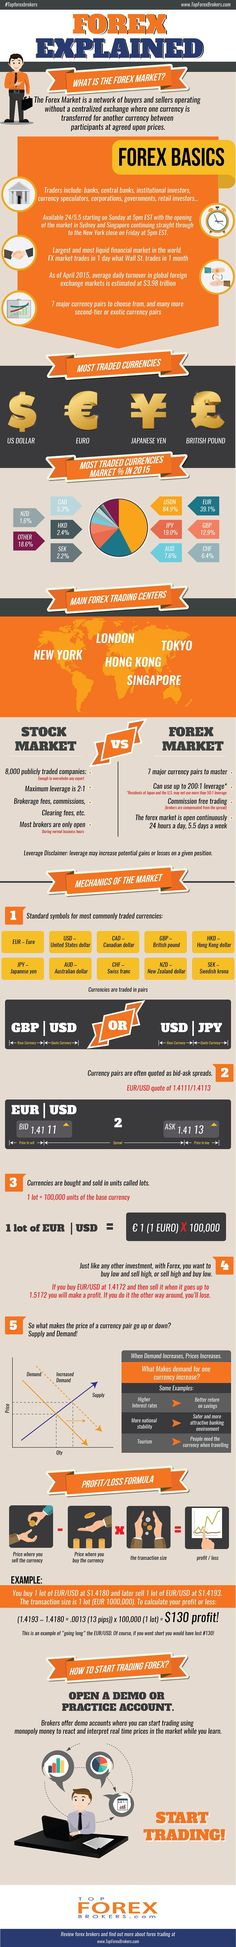 A Look At Forex Trading #infographic #Business #Finance #Trading